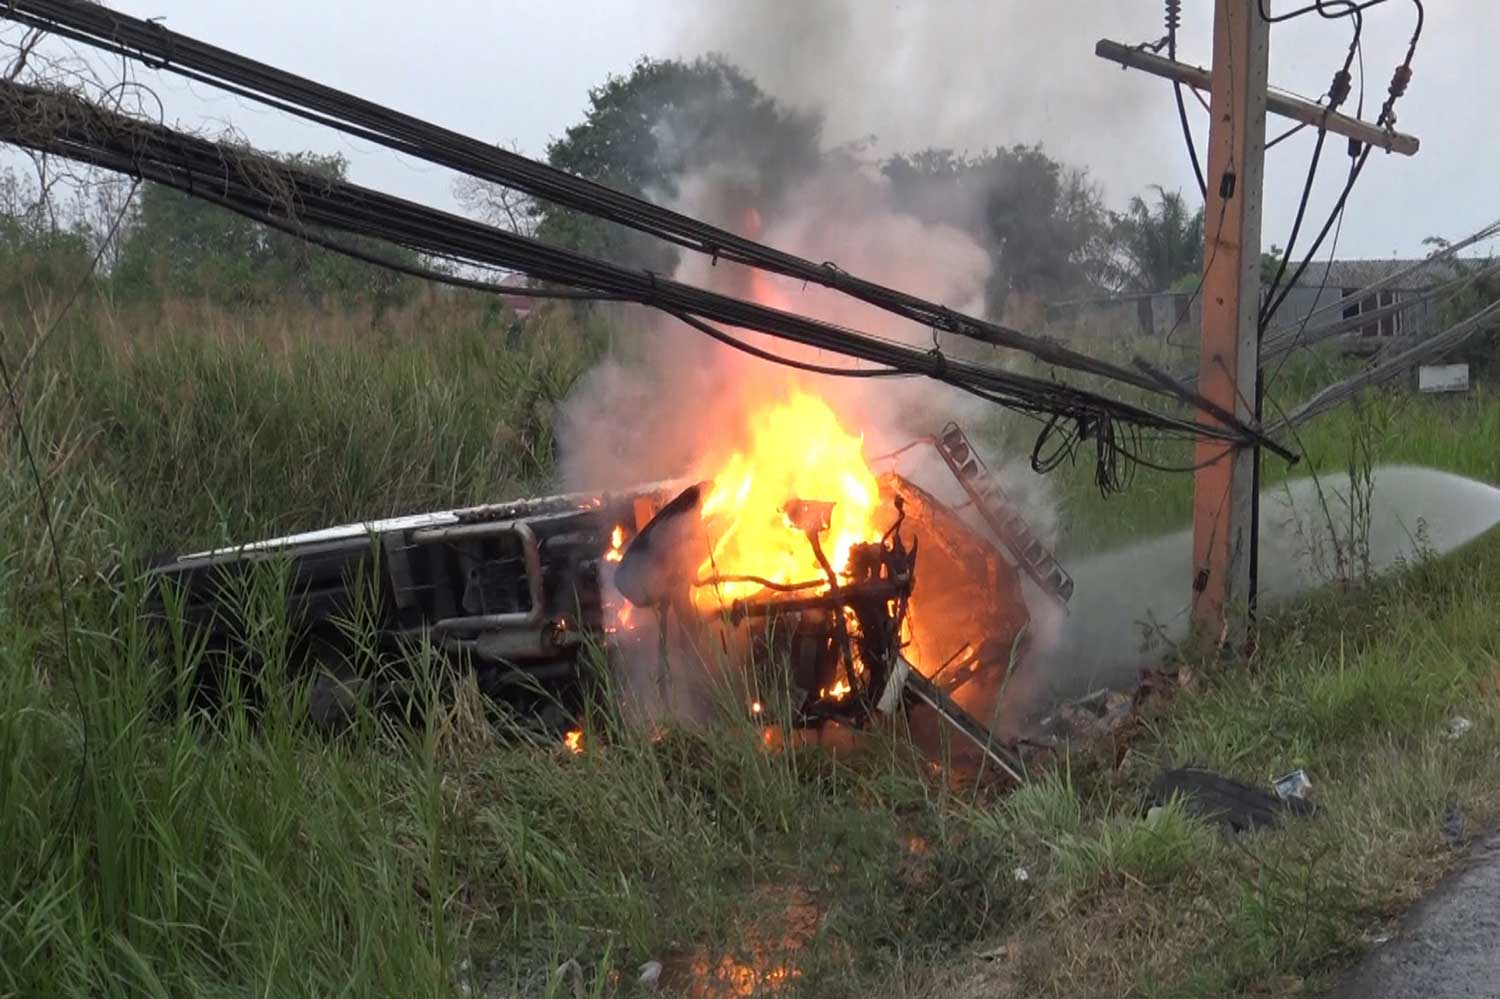 Flames shoot out of a refrigerated truck that caught fire after a tyre burst and it struck a power pole on Phetkasem Road in Pran Buri on Saturday. The driver was burned to death and his wife sustained injuries. (Photo by Chaiwat Satyaem)